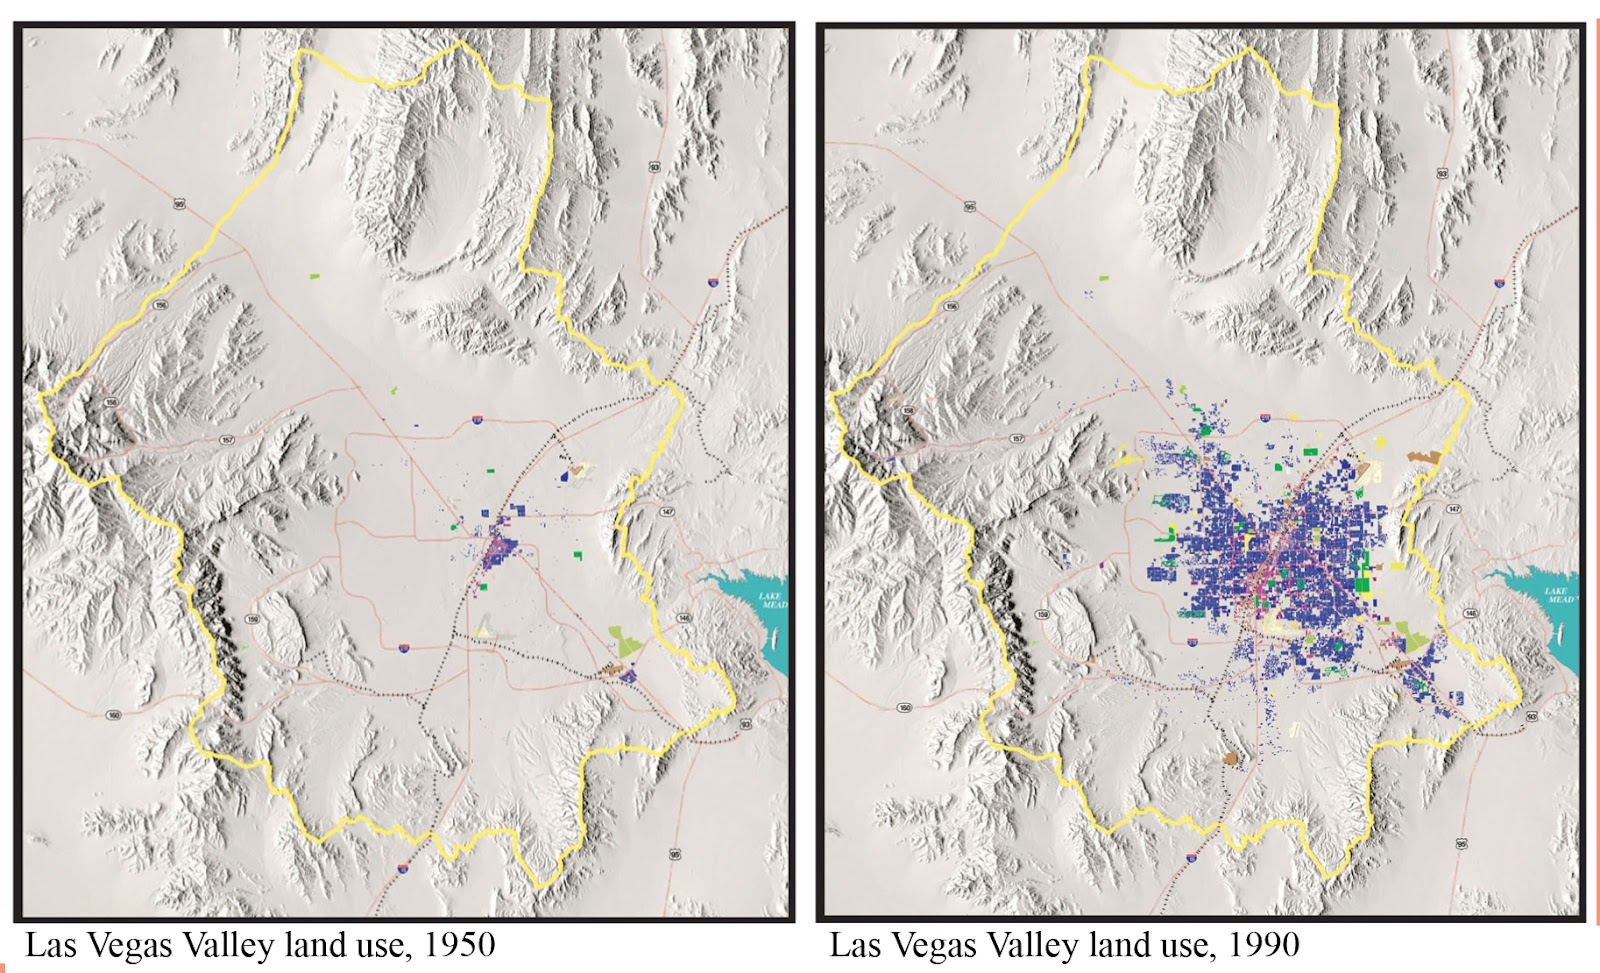 fig 1 las vegas metropolitan growth between 1950 and 1990 photo courtesy of southern nevada water authority